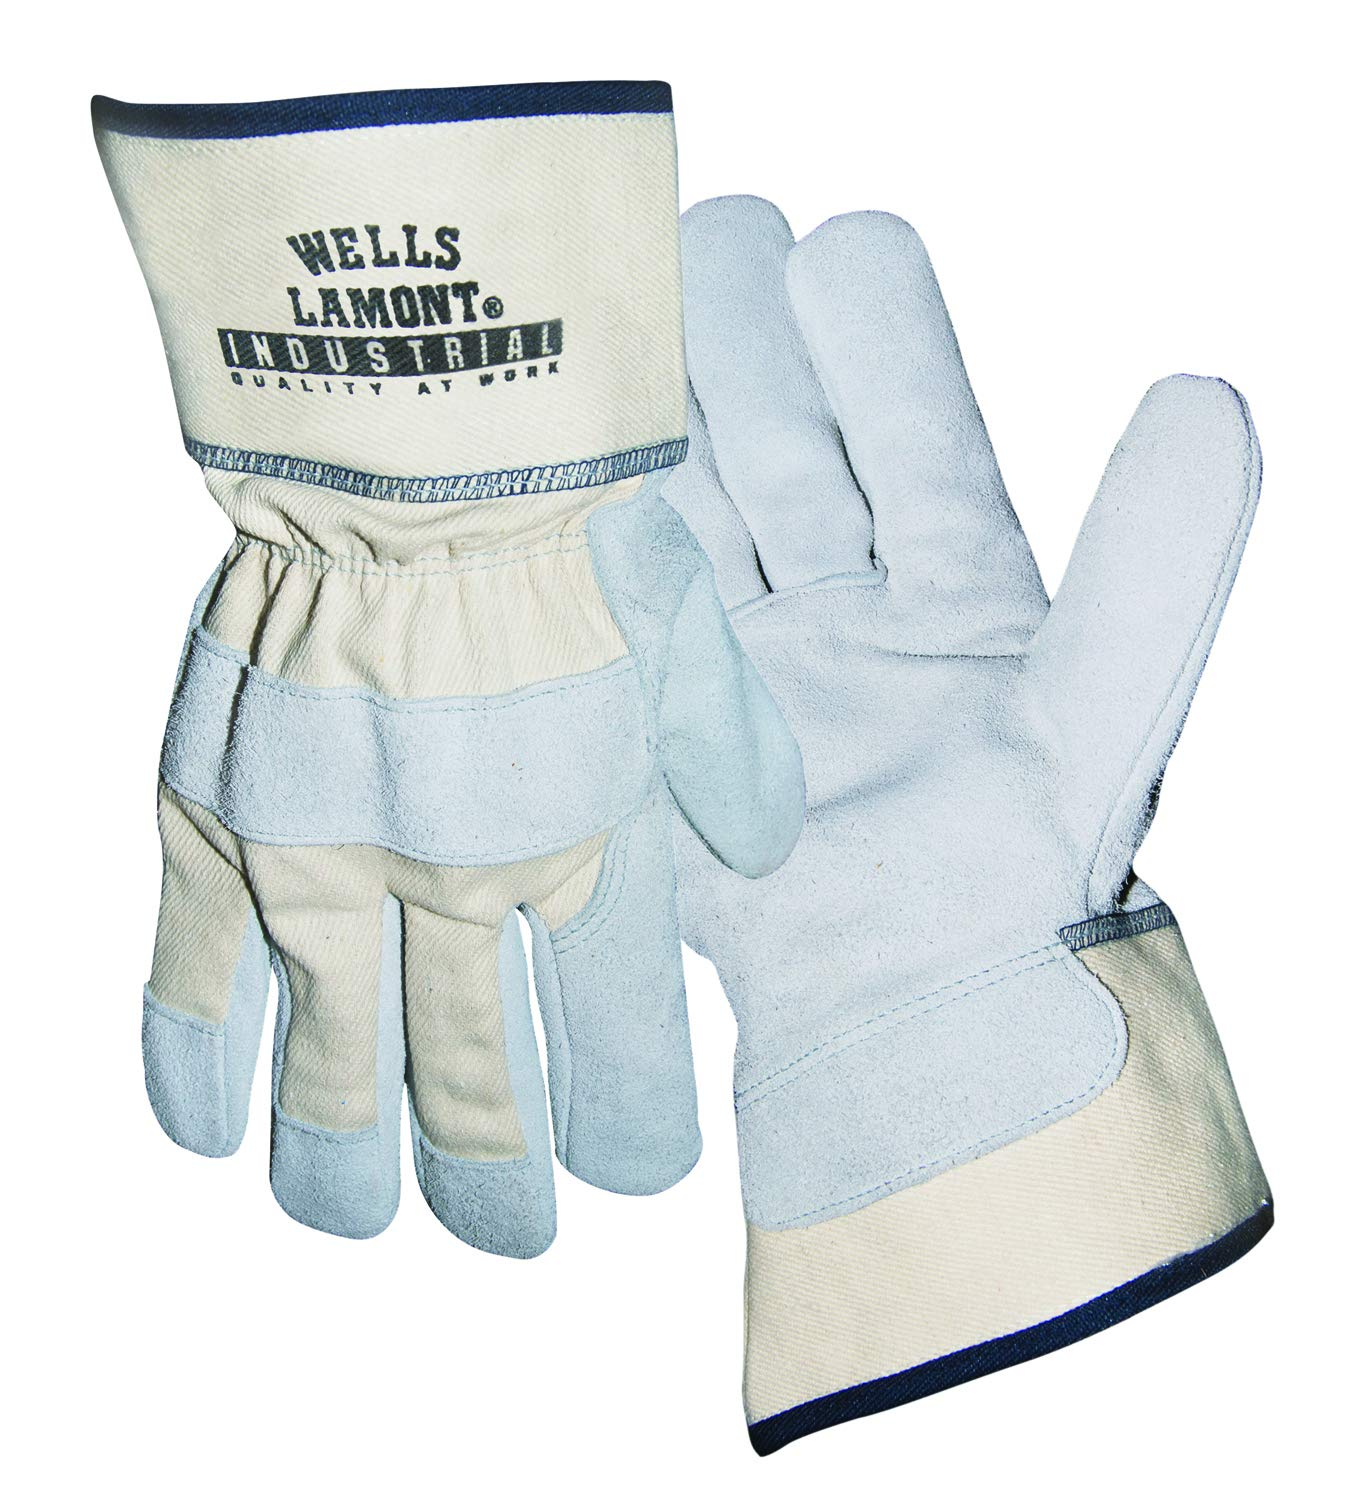 Wells Lamont Industrial Y3024L Leather Palm Gloves Premium Split Leather Palm with Whizard Liner. Safety Gloves (Pack of 12 Pairs)